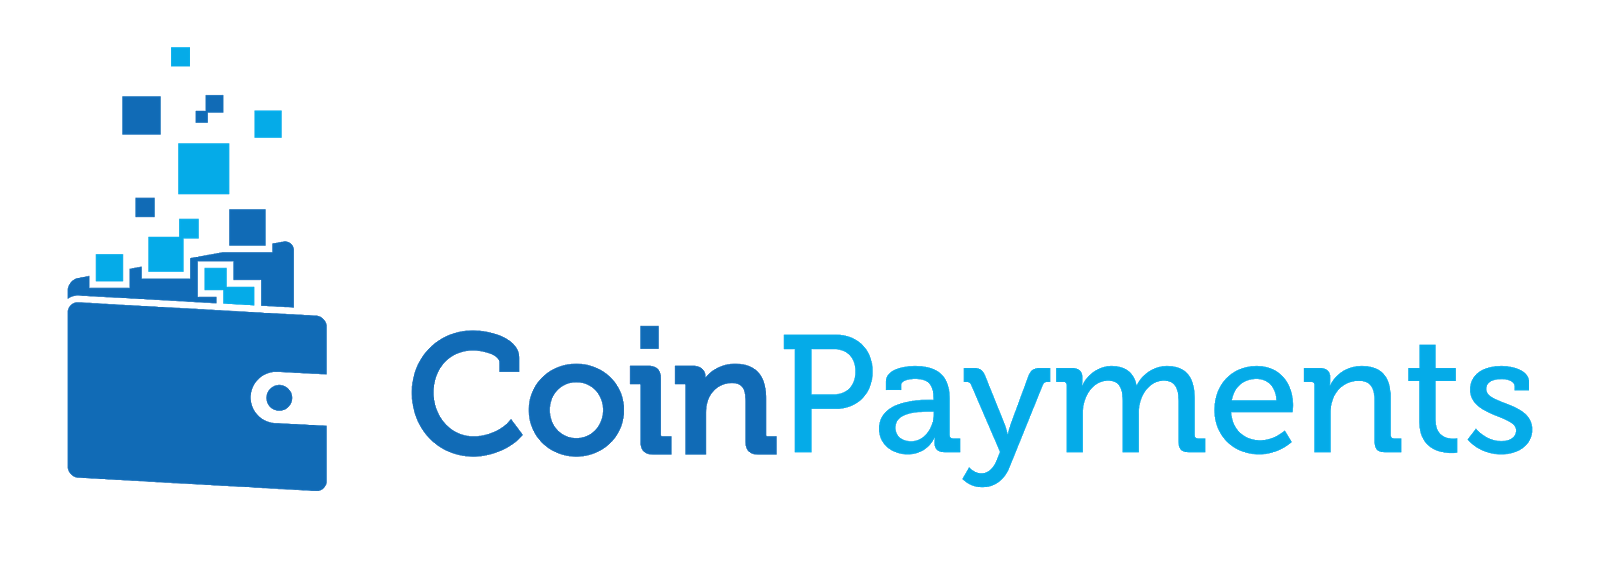 coinpayments-wallet